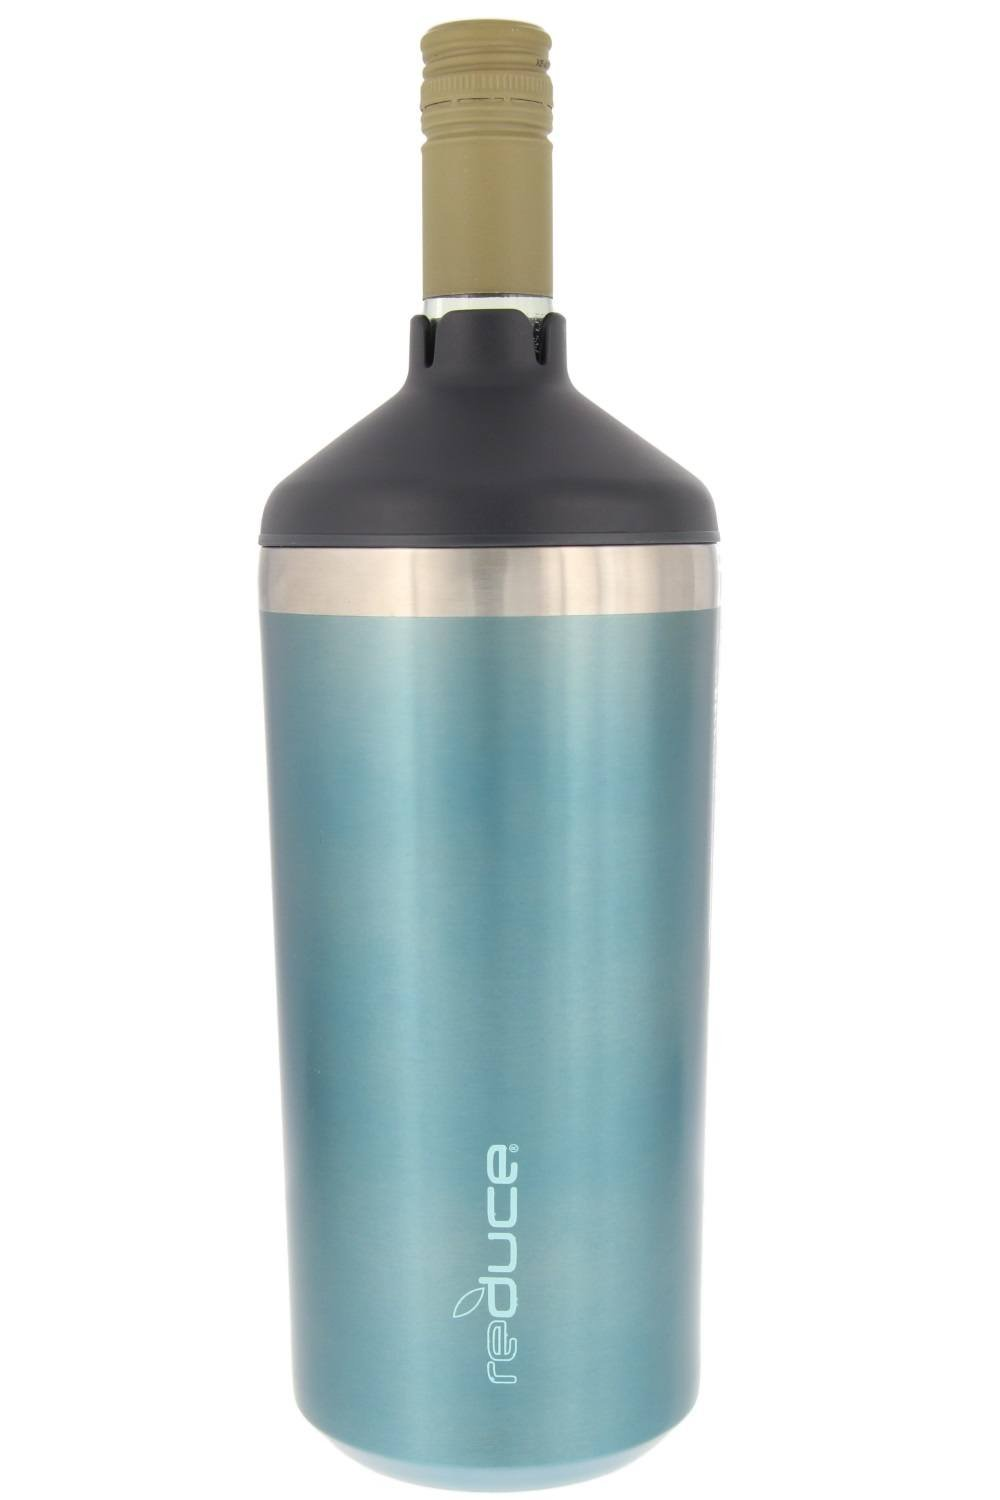 Portable Wine Bottle Cooler by REDUCE-Stainless Steel, Insulated Chiller to Keep Wine at the Perfect Temperature, No Ice Required-Ideal for Outdoor Summer Parties, Fits Most Wine Bottles – Ocean Blue